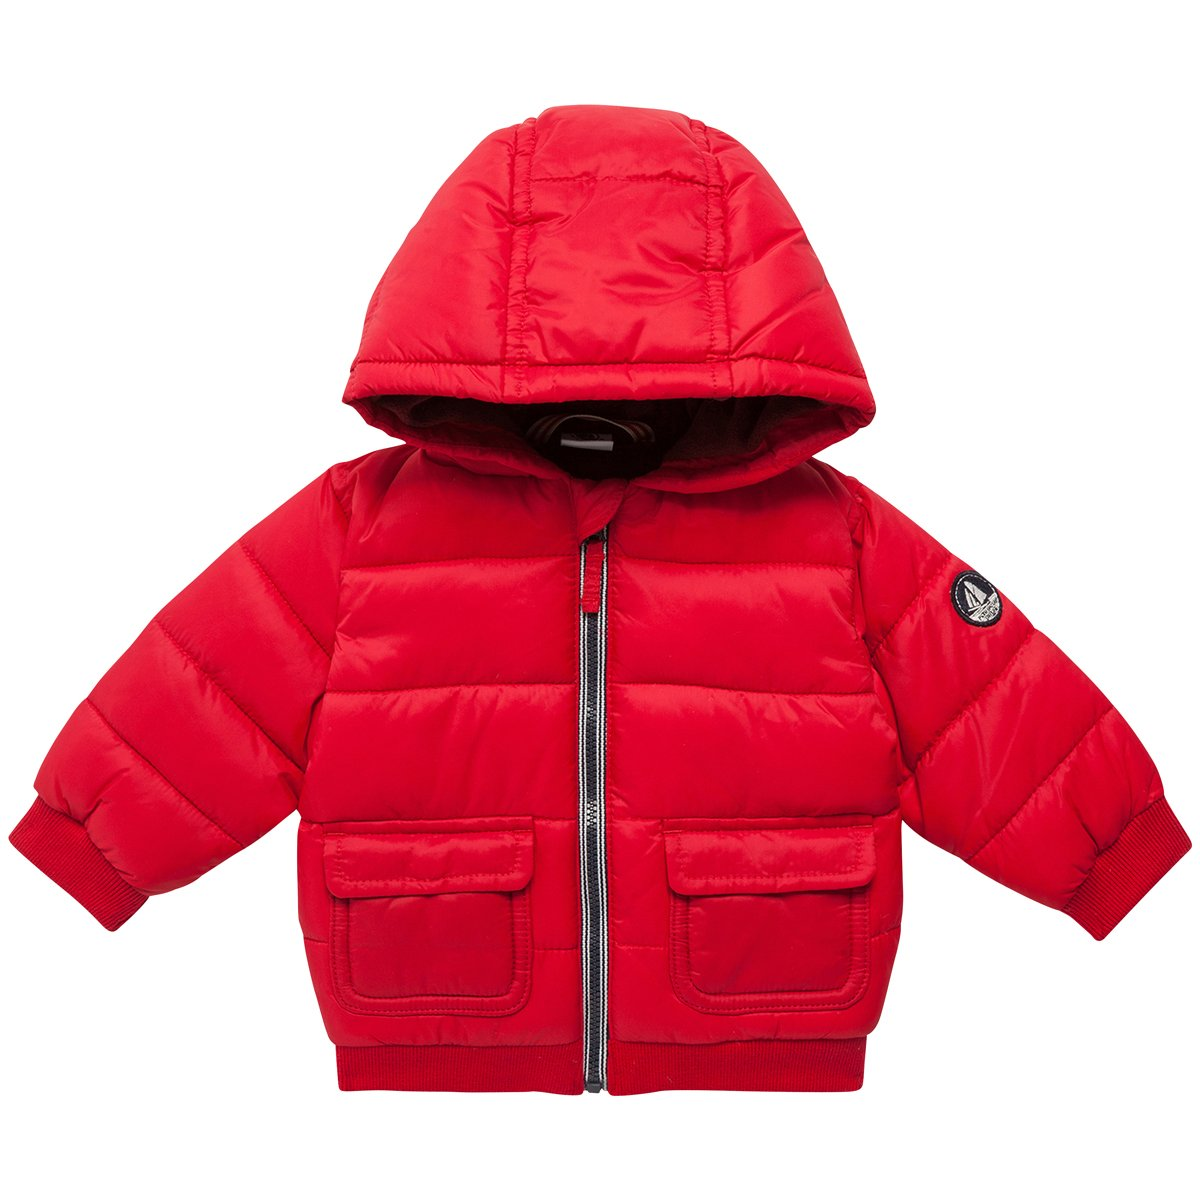 Petit Bateau Baby Boys' Puffy Hooded Coat, Red, 24 Months